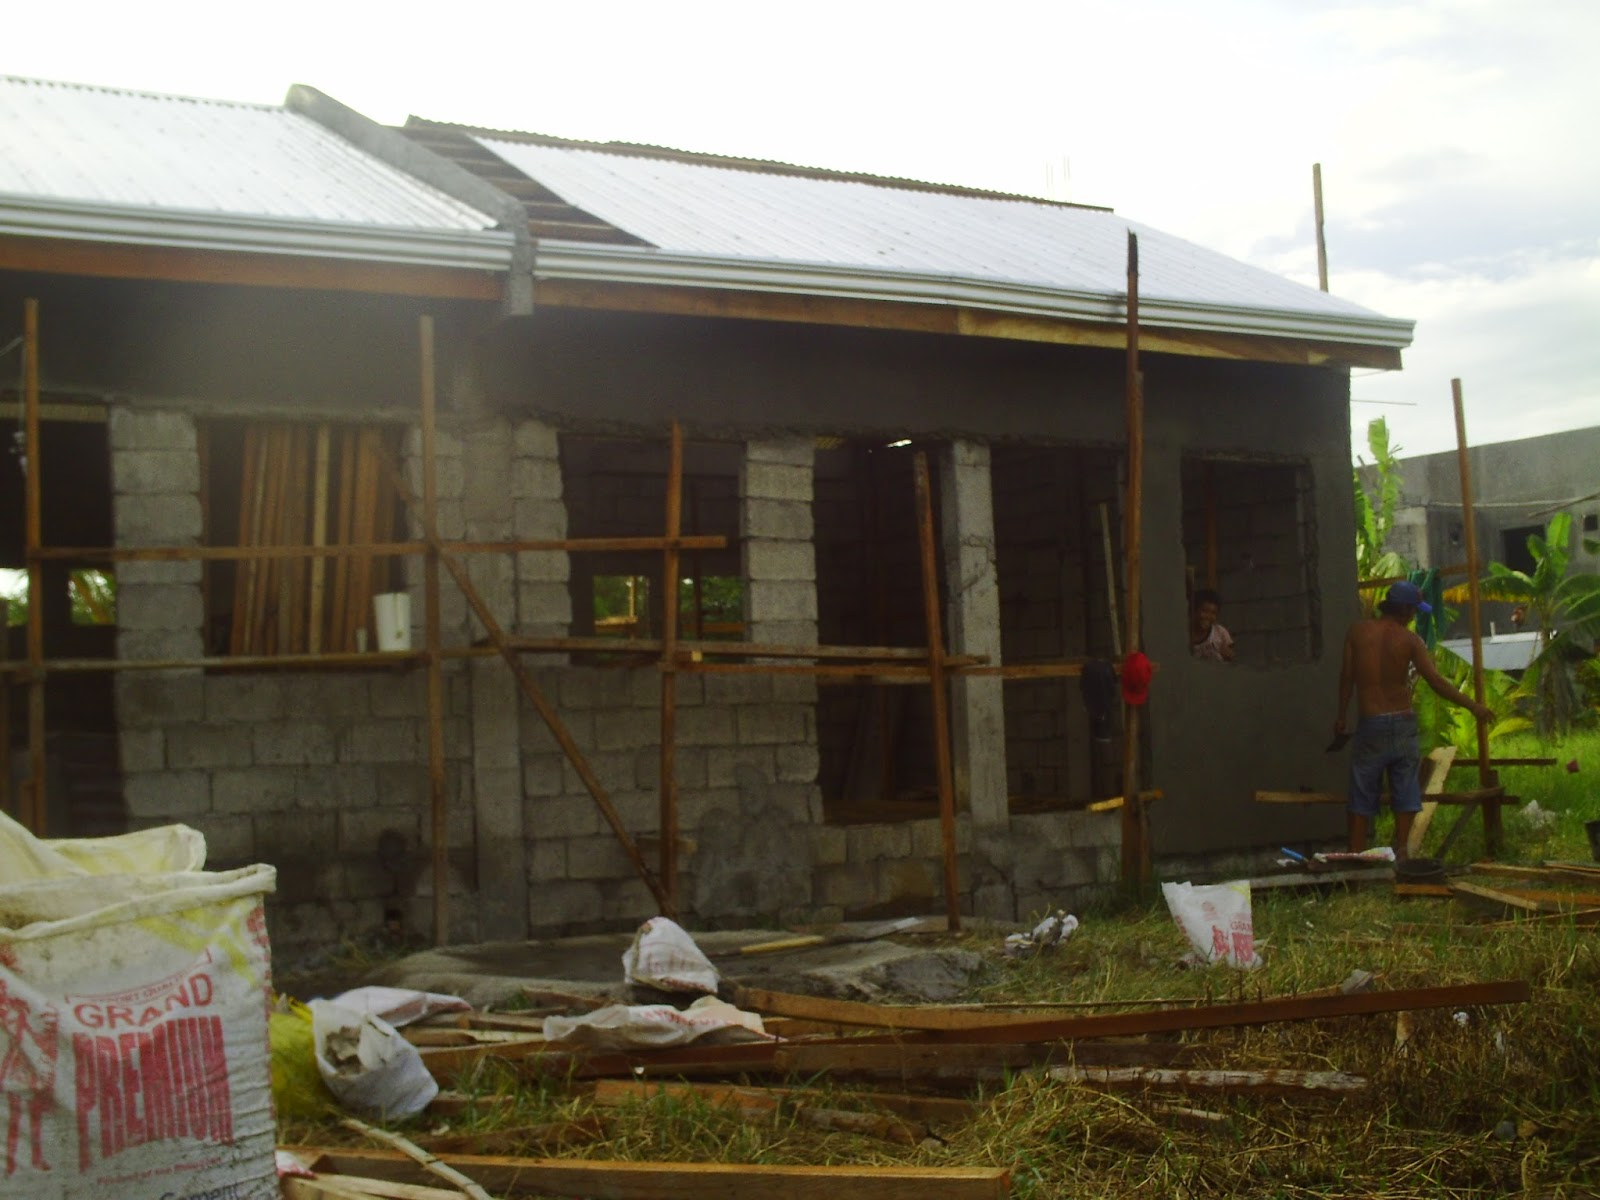 Ofw business ideas 4 doors concrete apartment at p175k for Small house design worth 300 000 pesos